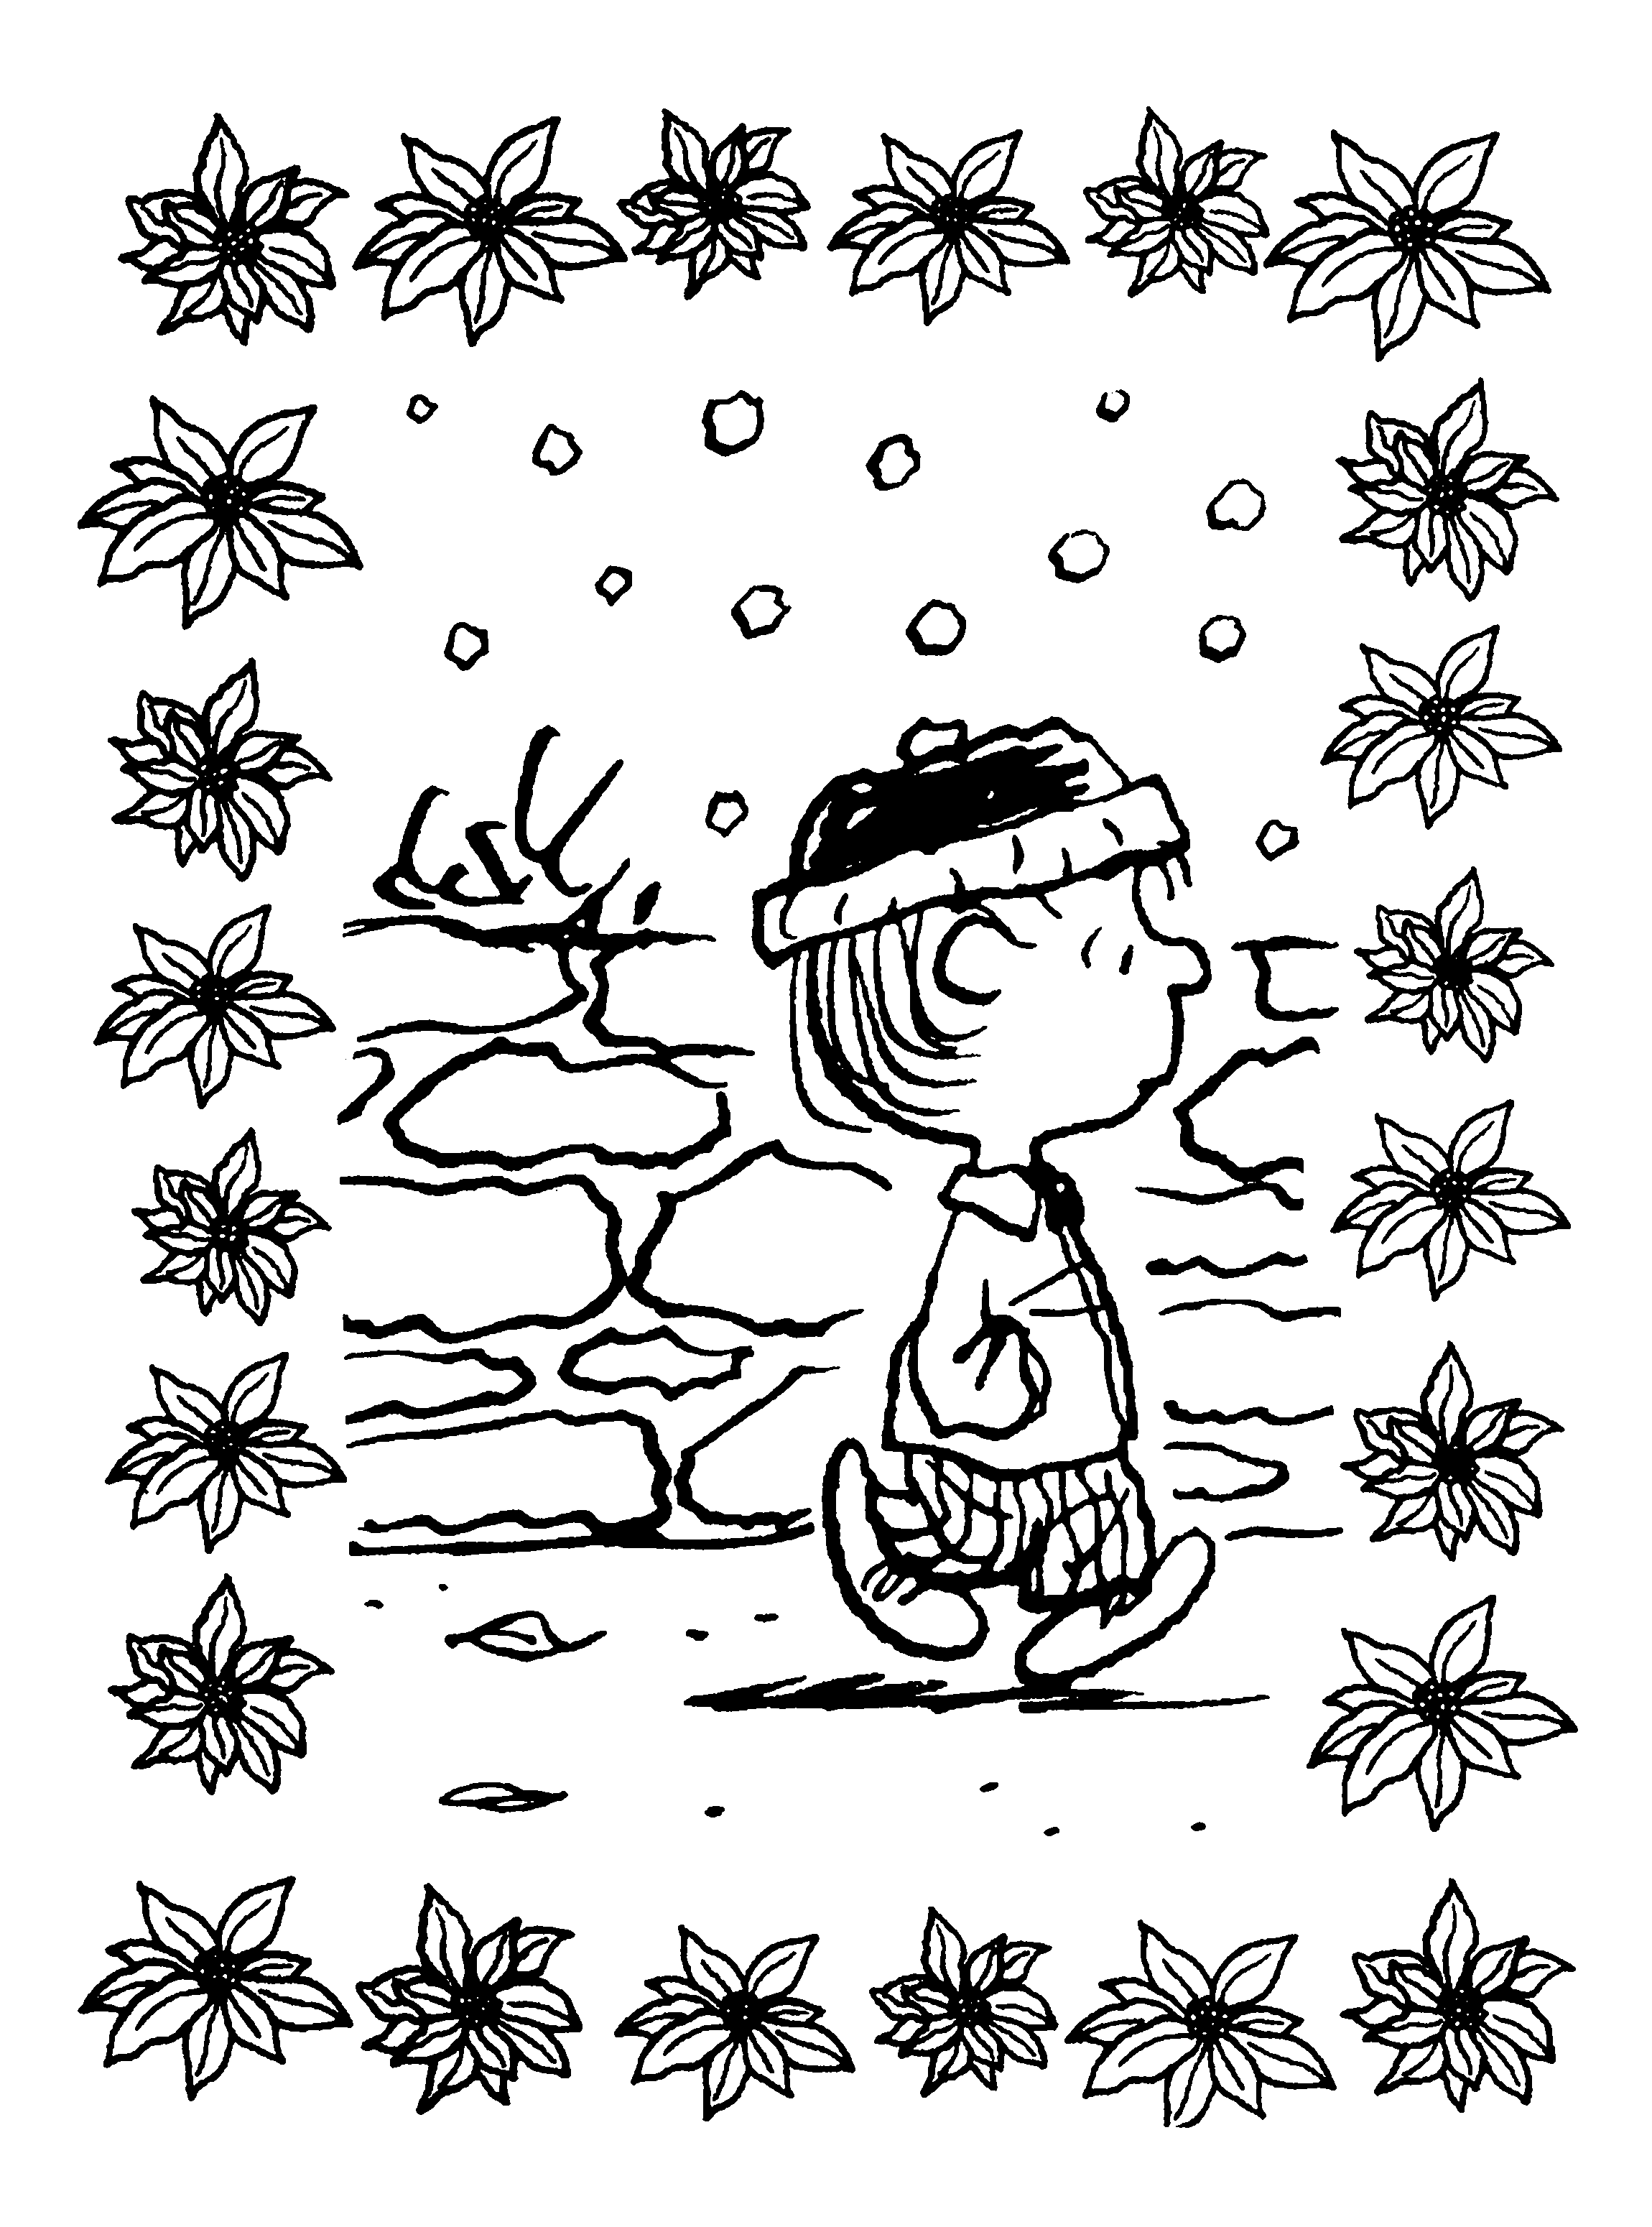 Peanuts Xmas Coloring and Activity Book | snoopy | Pinterest ...